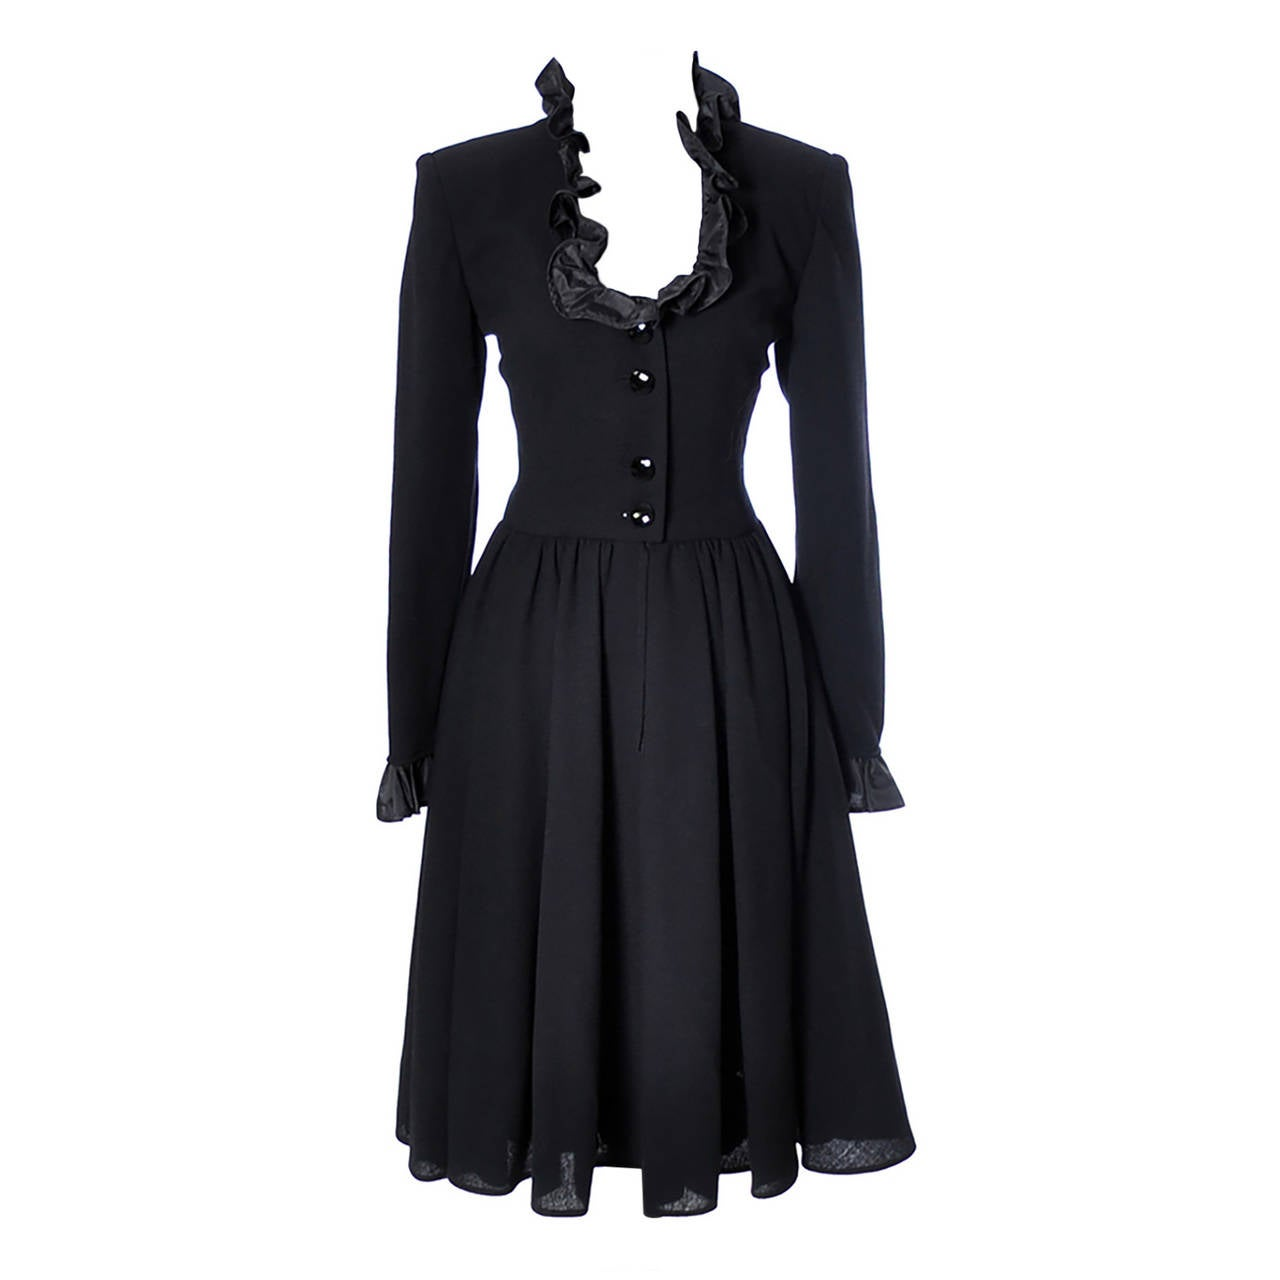 Vintage Valentino Black Wool Crepe Dress w/ Ruffled Taffeta Trim Size 6 1